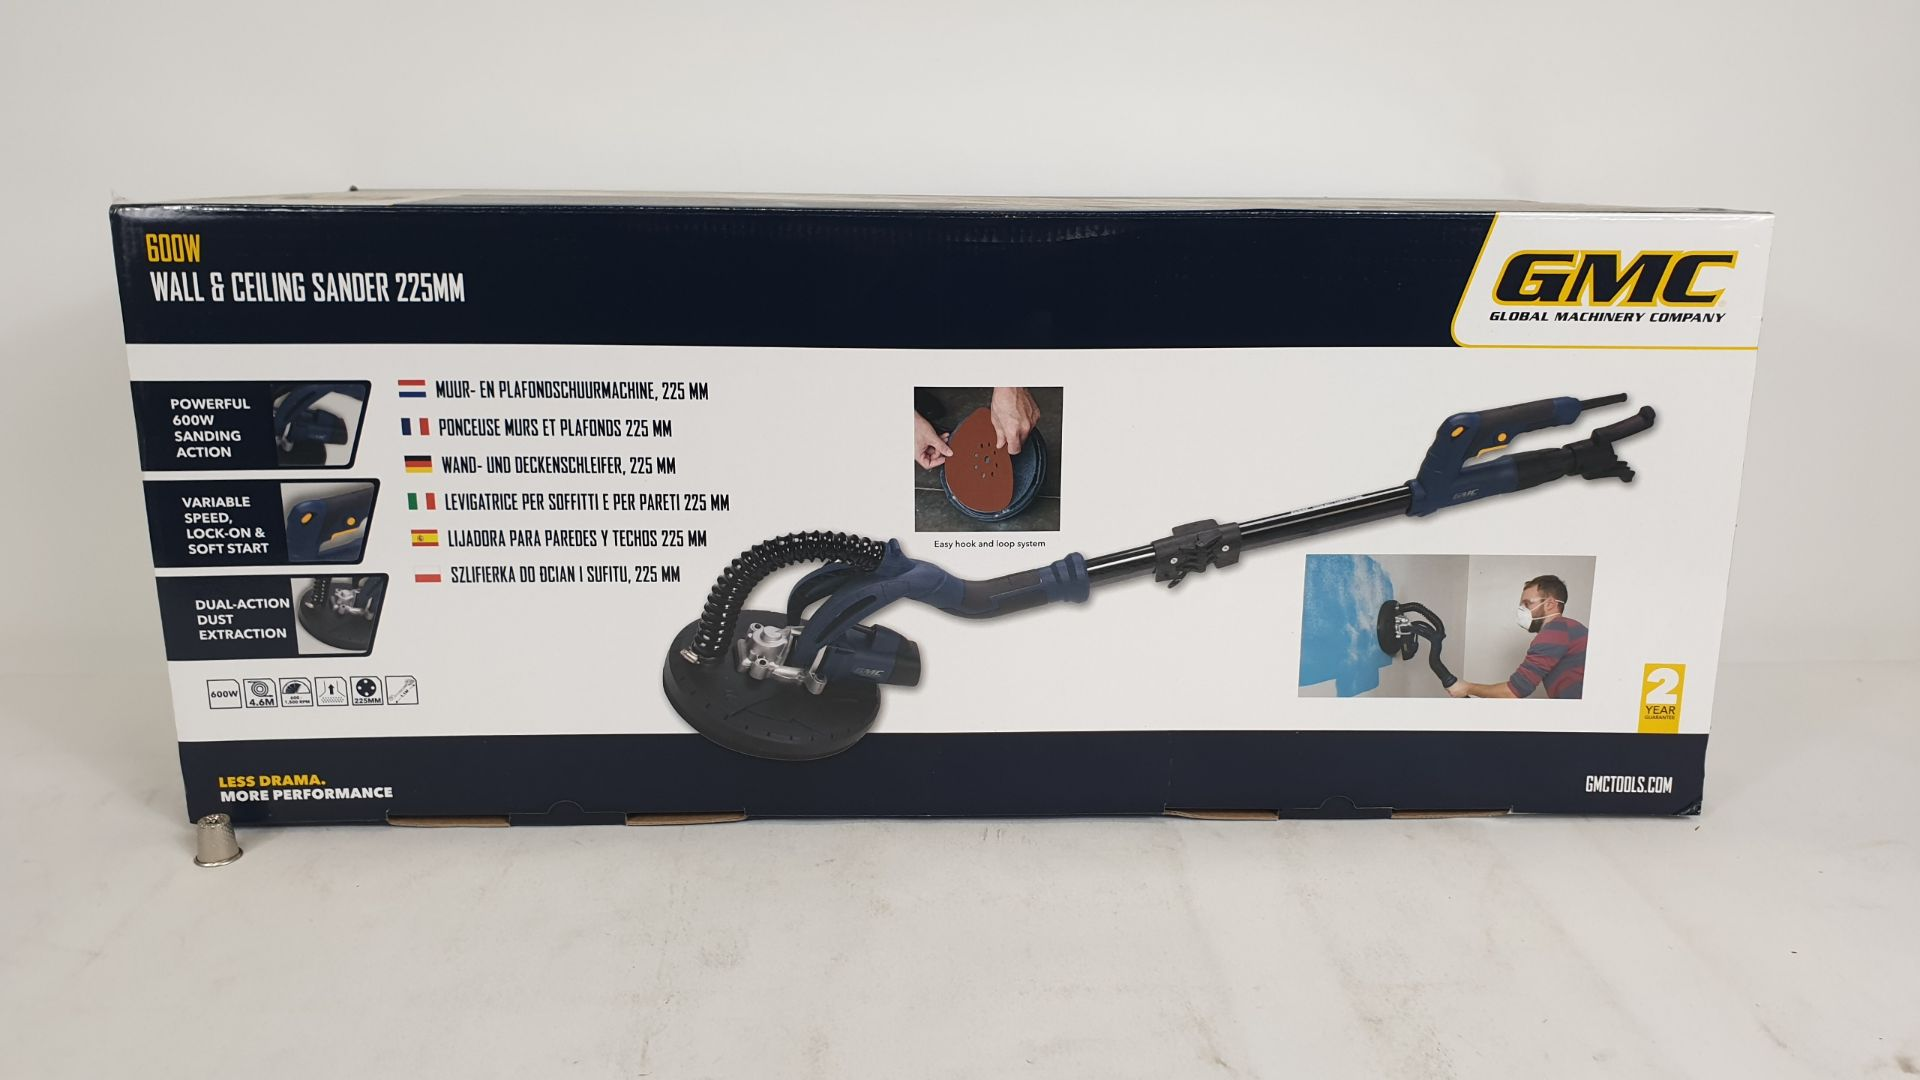 Lot 1548 - (LOT FOR THURSDAY 28TH MAY AUCTION) GMC 600W WALL AND CEILING SANDER 225M (PRODUCT CODE 264803) - (